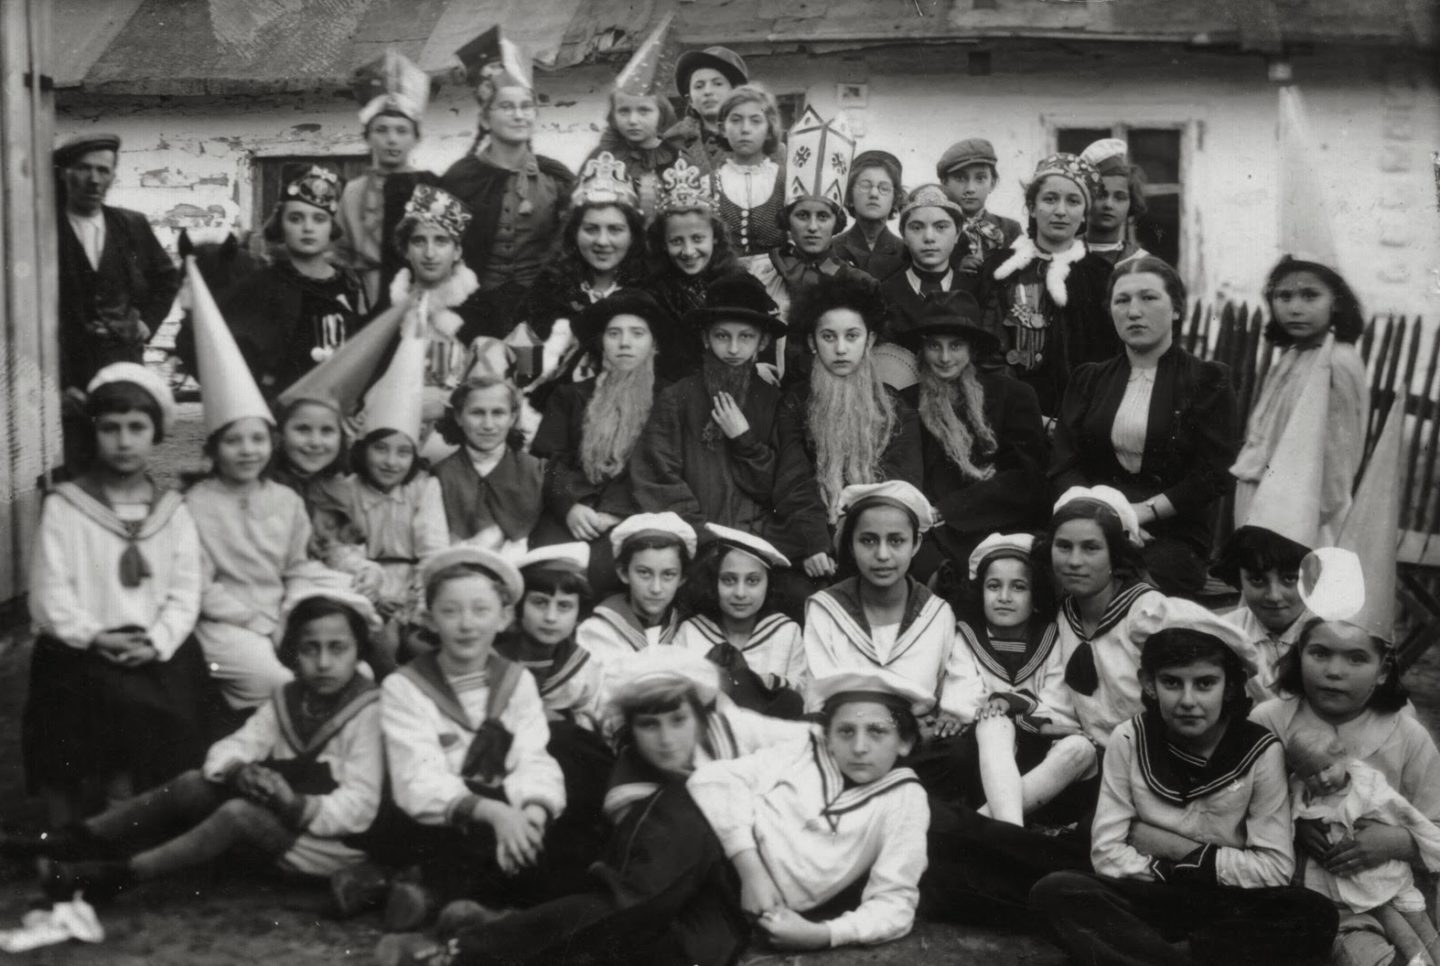 "<p>A Purim celebration in Poland, 1939, just a few years after Manger's <em>Megile</em> was published. Motl Didner of the Folksbiene Theatre specifically <a href=""https://www.yiddishbookcenter.org/language-literature-culture/yiddish-literature/focus-itzik-manger"">identifies</a> Manger's book in the context of and as a commentary on European antisemitism preceding World War <span class=""caps"">II</span>. Image via <span class=""caps"">USHMM</span>.</p>"